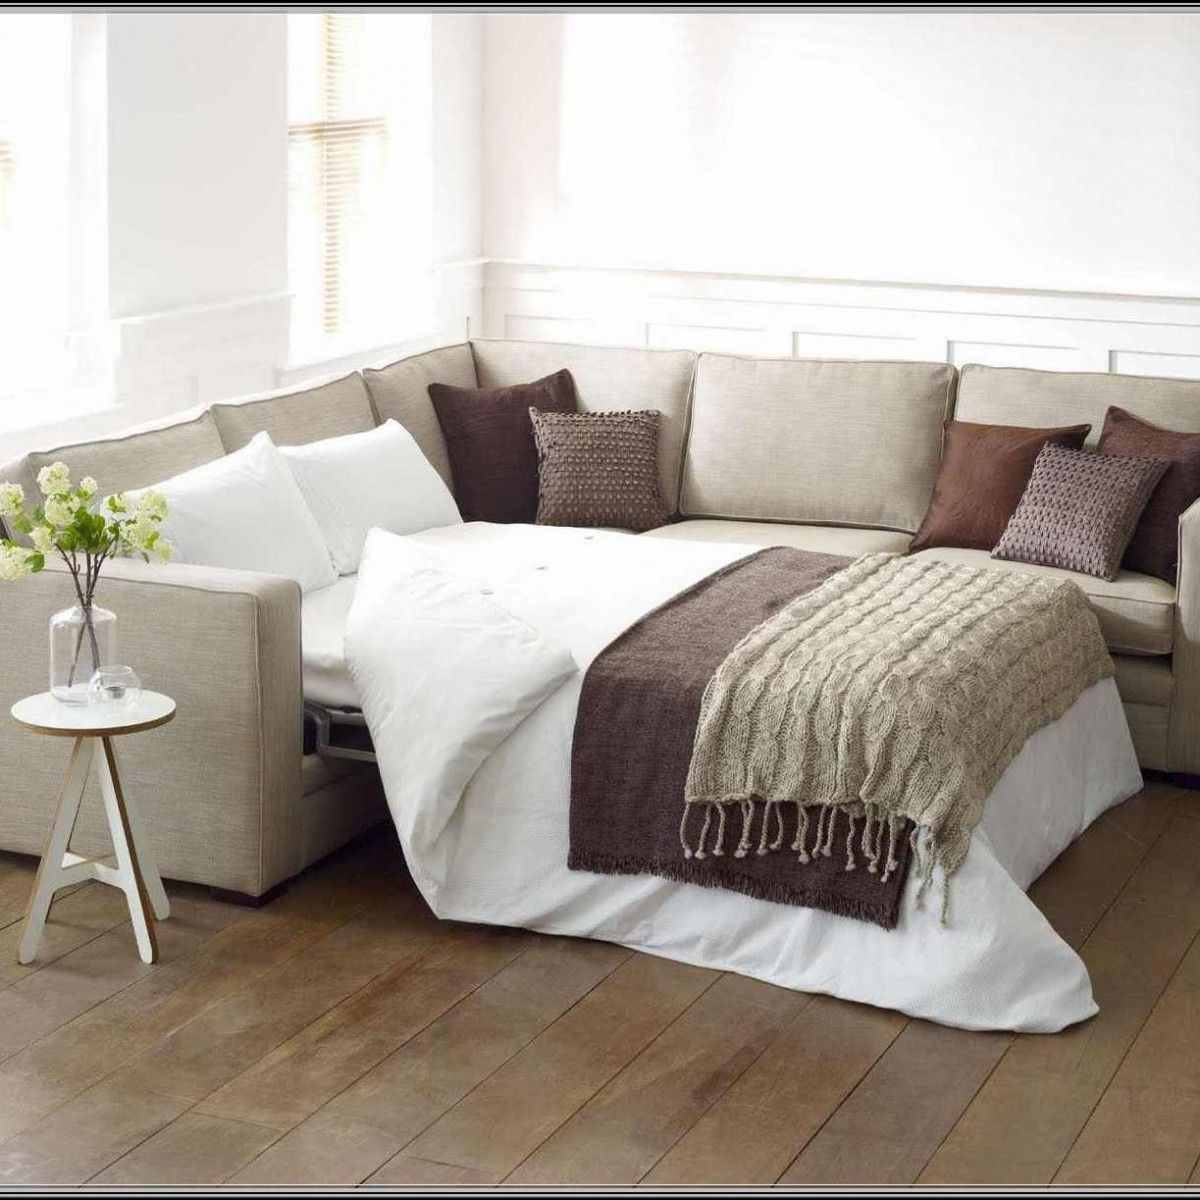 Sectional Sofa Beds For Small Spaces Jual Tanpa Sandaran Sleeper Sofas Important Aspects